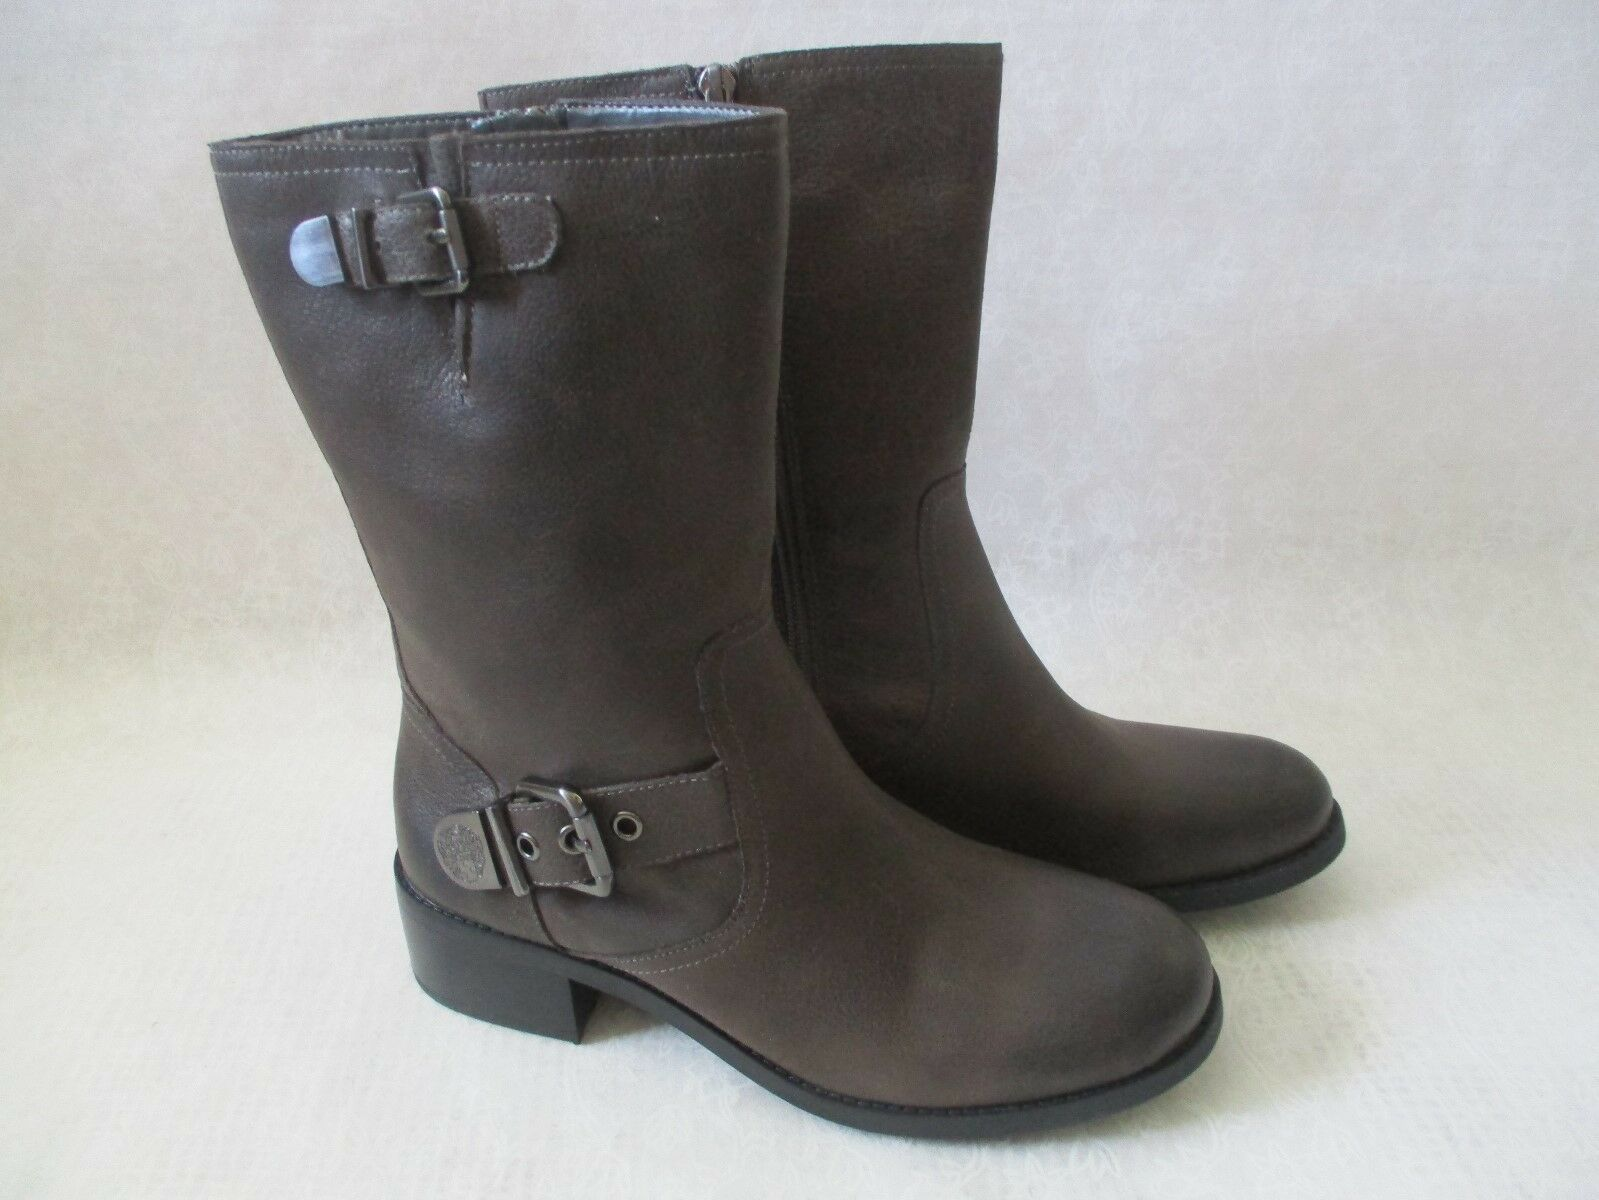 149 VINCE CAMUTO GRAY LED GENUINE LEATHER RIDING BOOTS SIZE 10 W - NEW W BOX